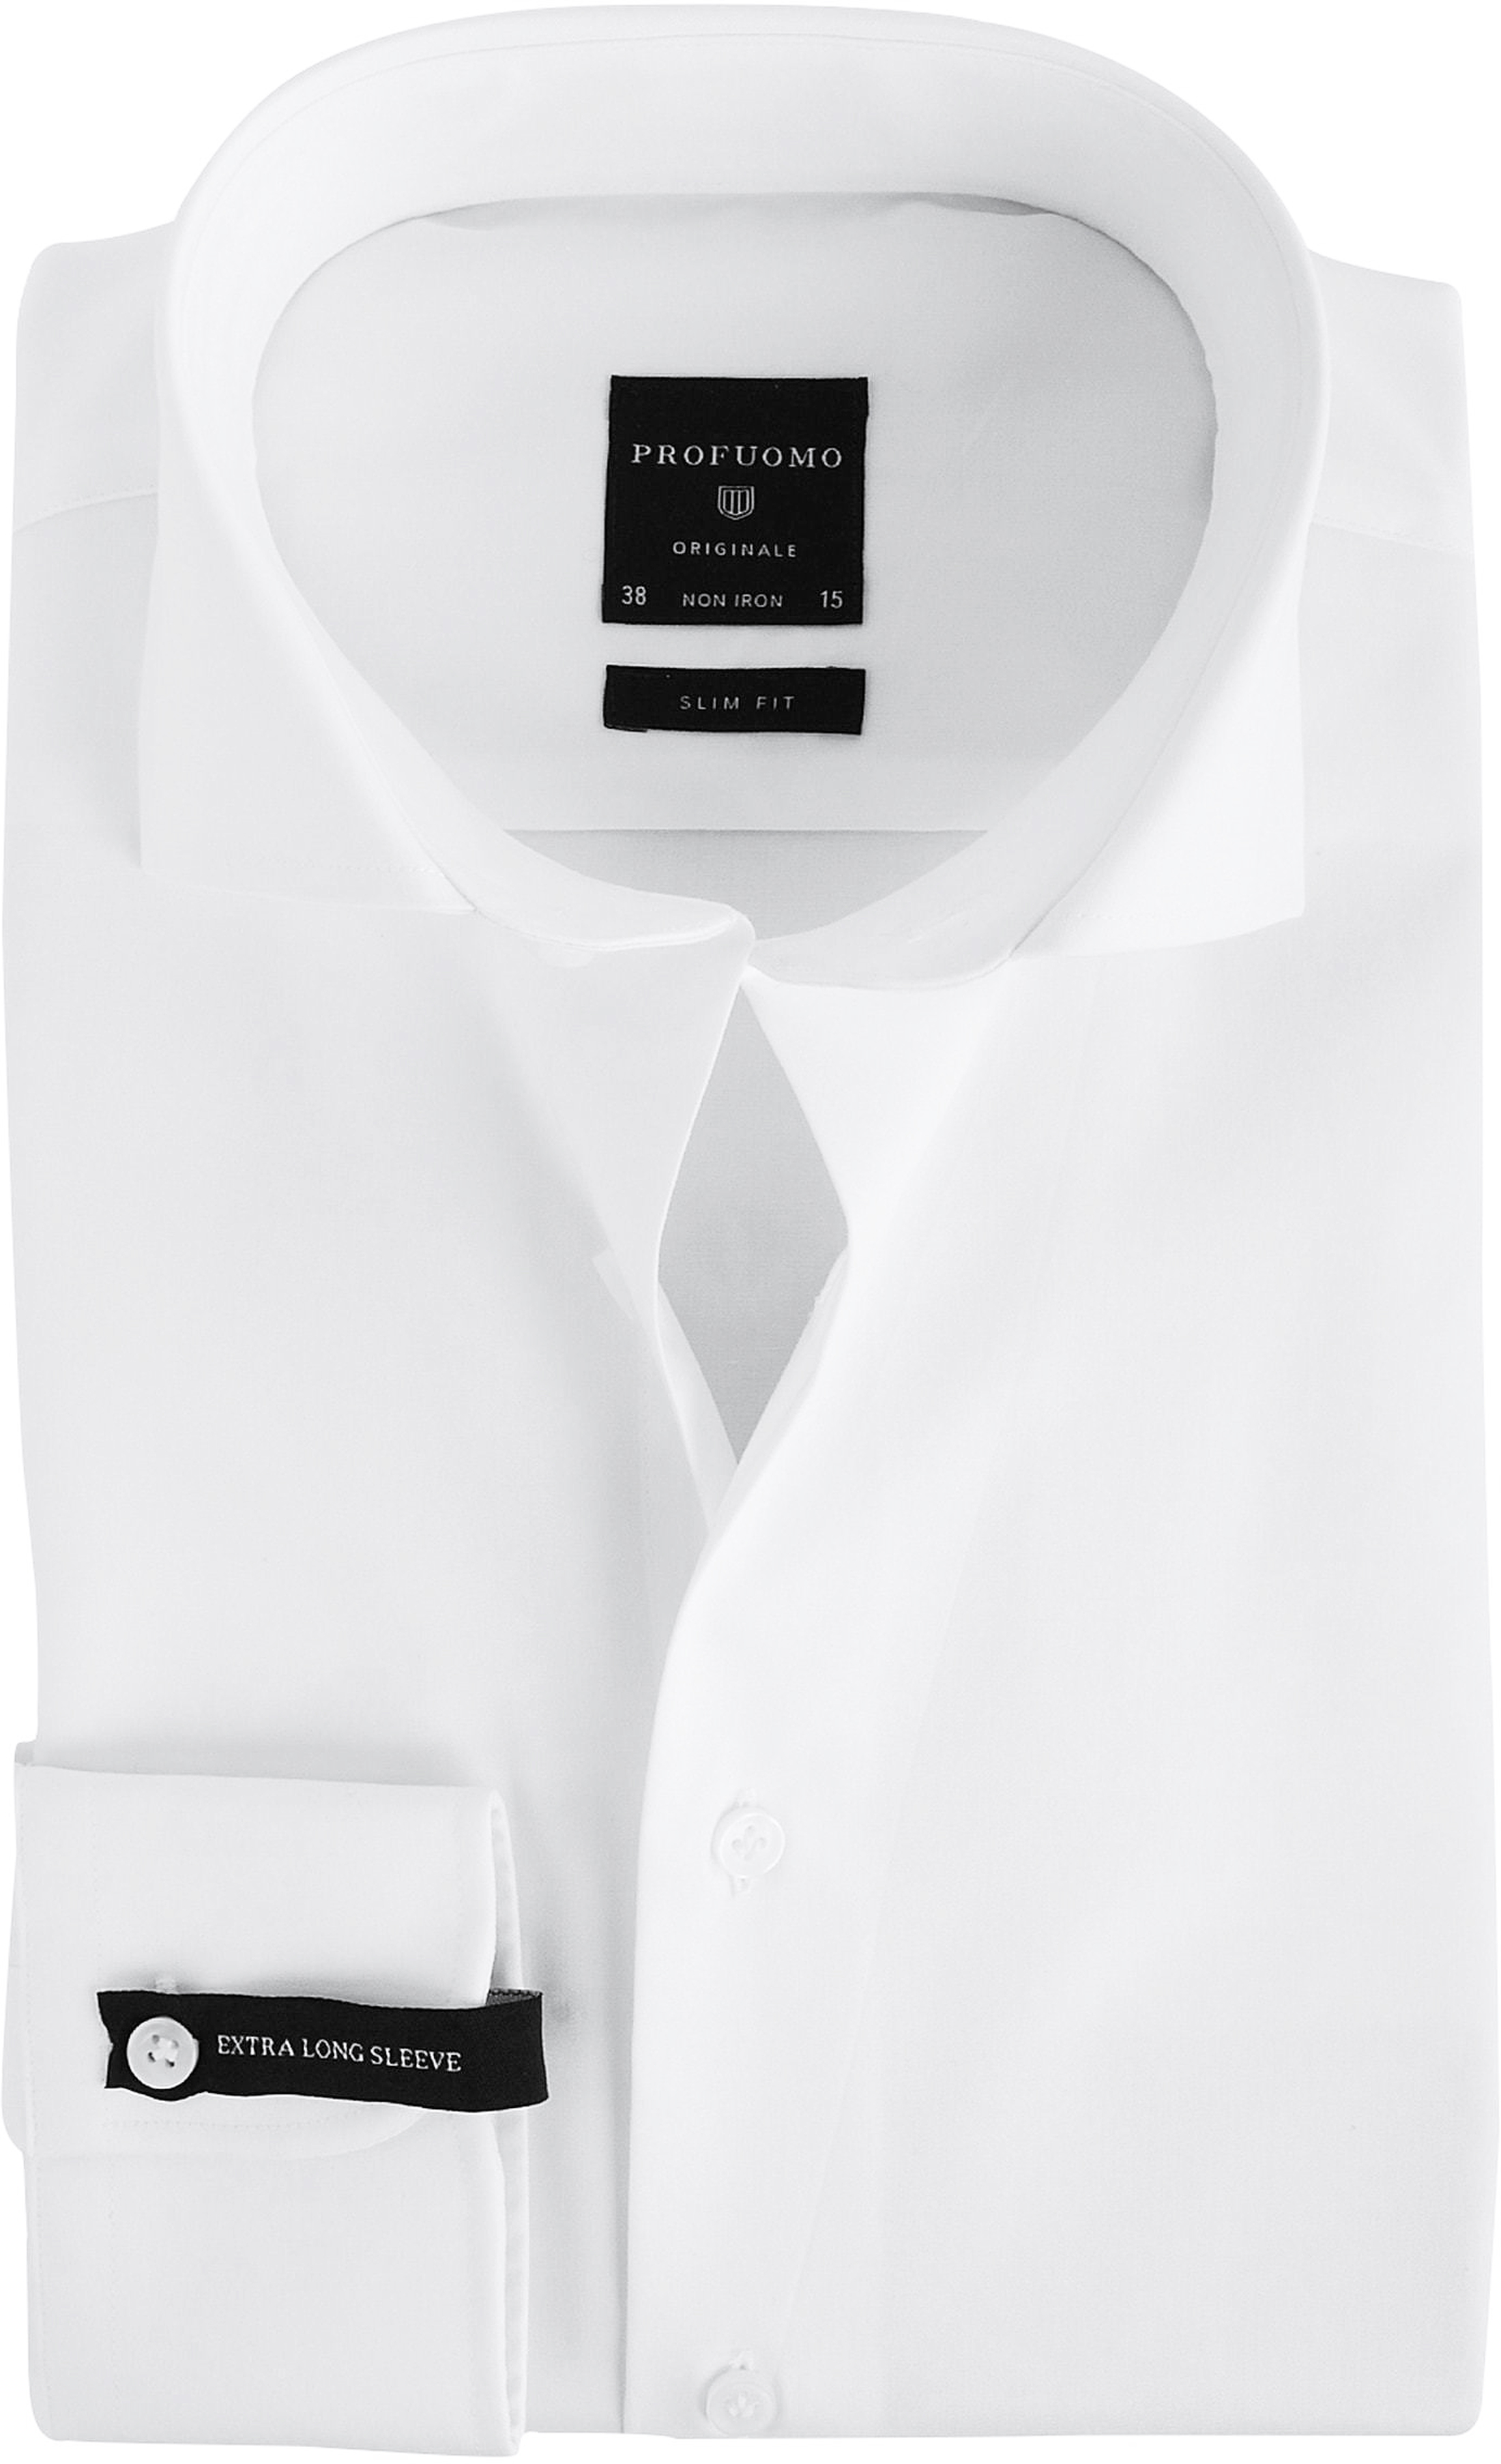 Profuomo Shirt Extra Long Sleeve Cutaway White